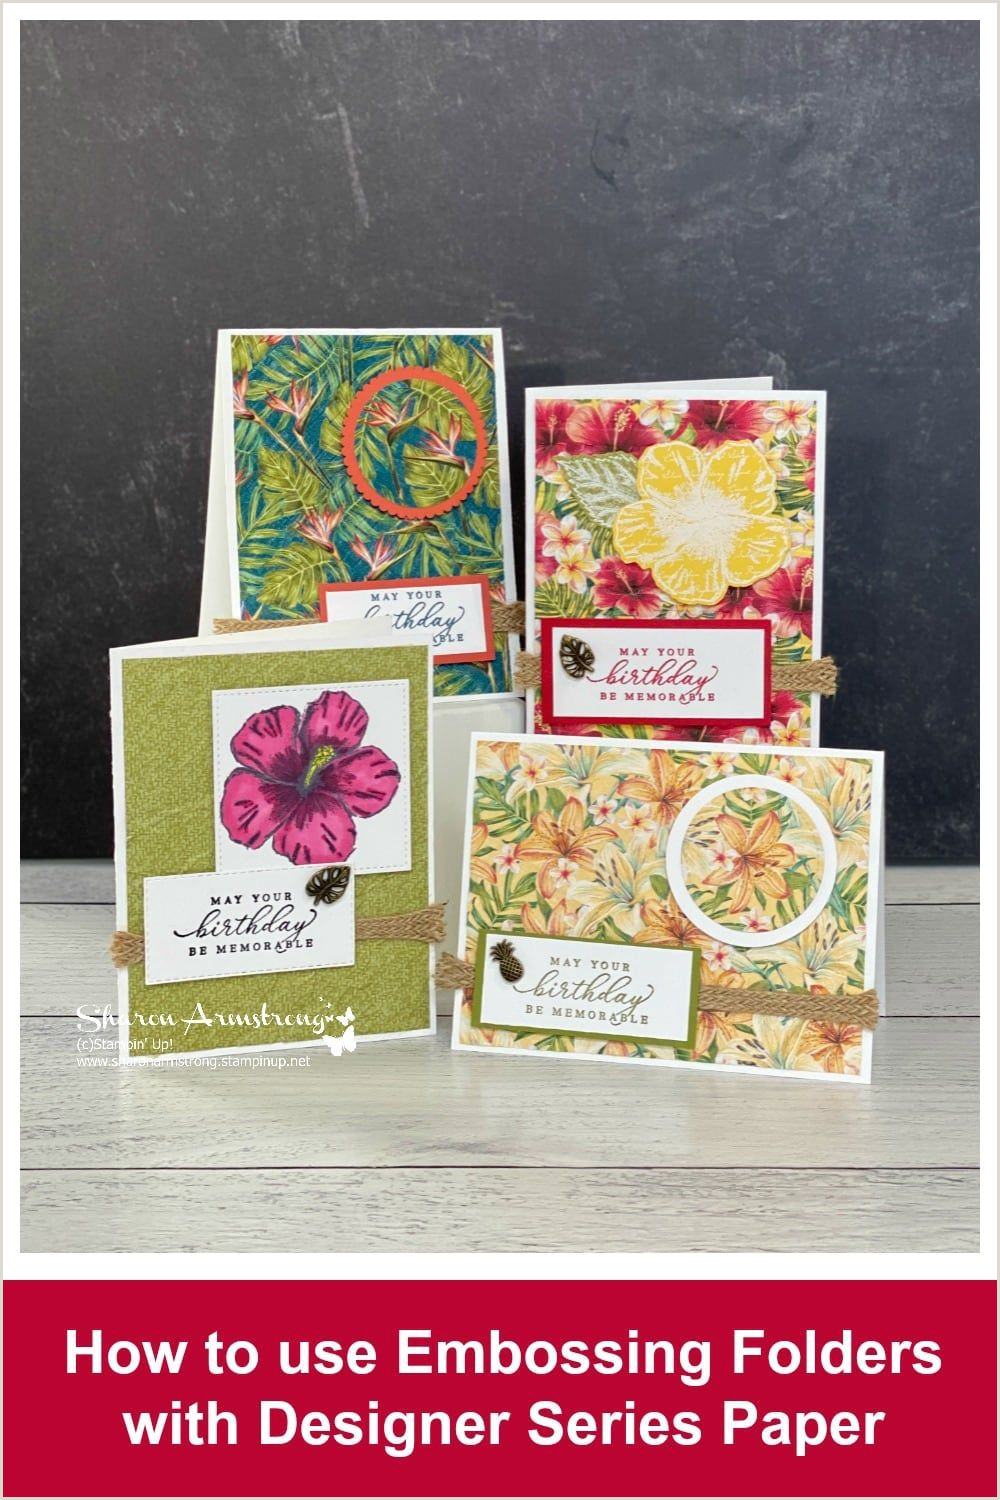 Designer Paper For Card Making Let Me Show You How To Emboss Scrapbook Paper And Designer